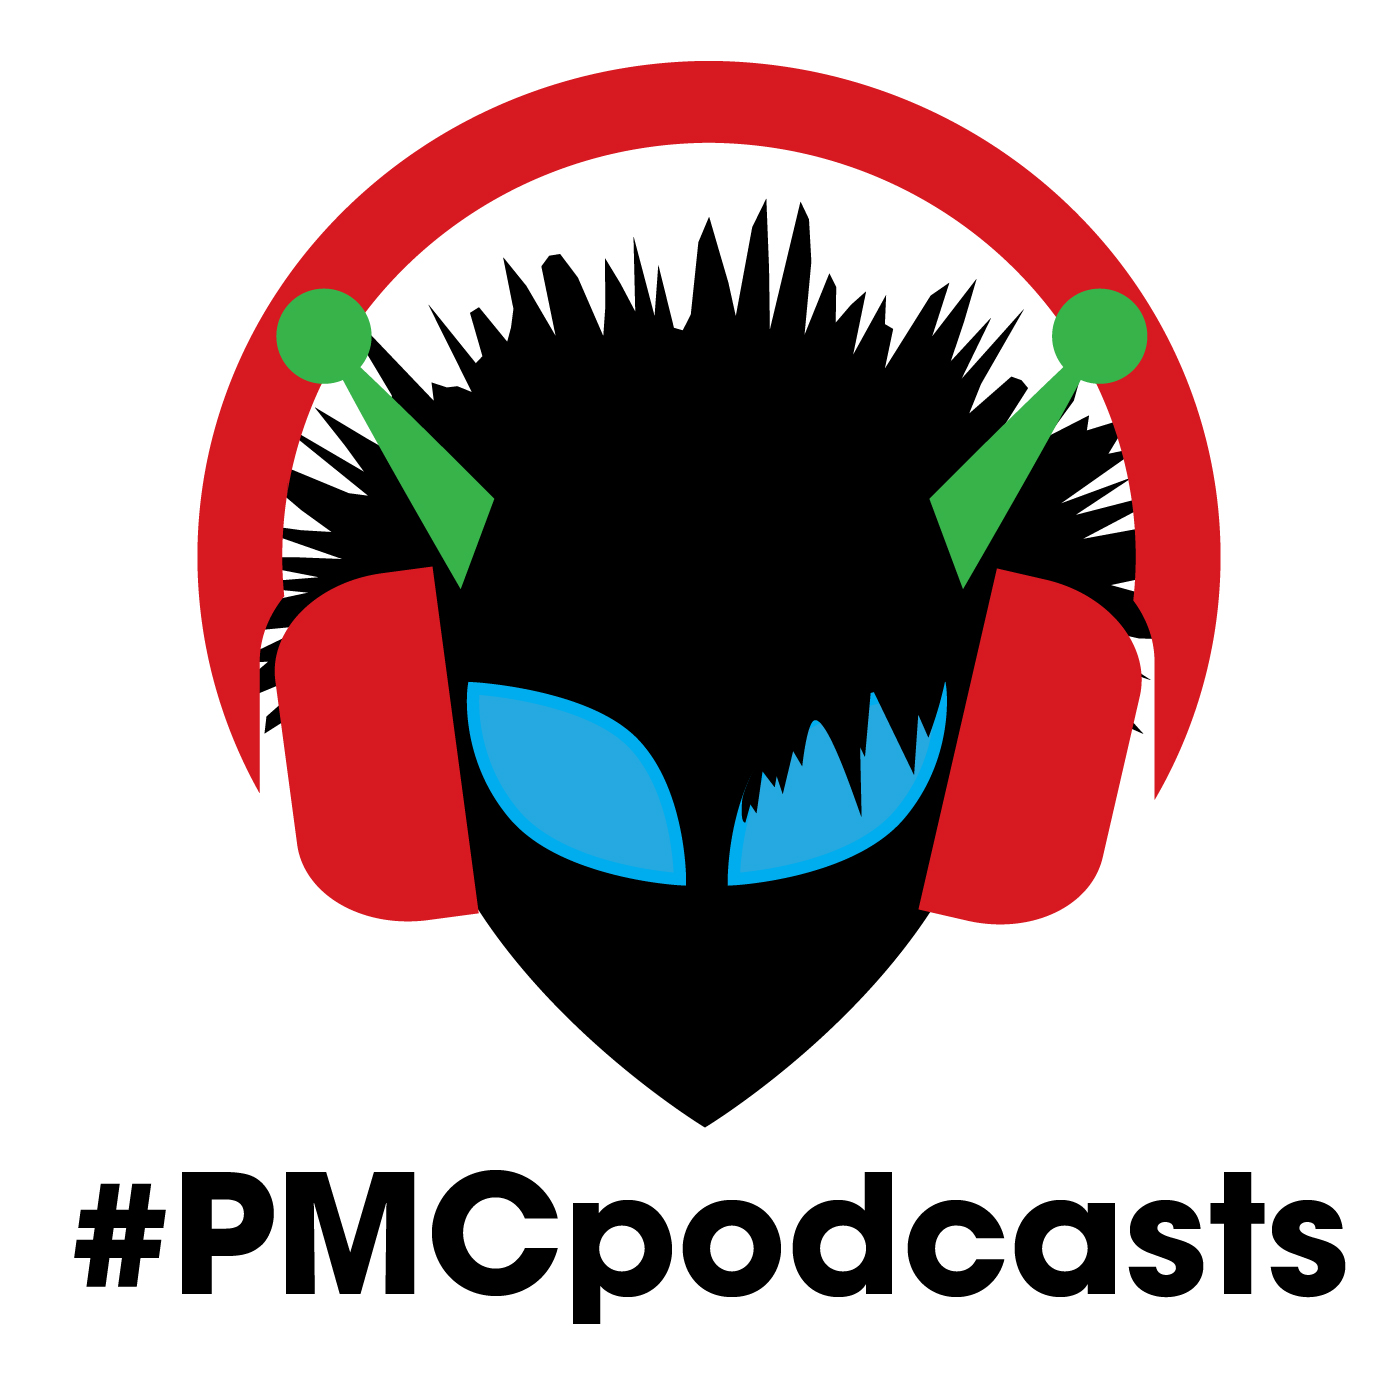 Ep. 15 #PrinterChatPodcast: Events and Equipment Acquisition Tips show art